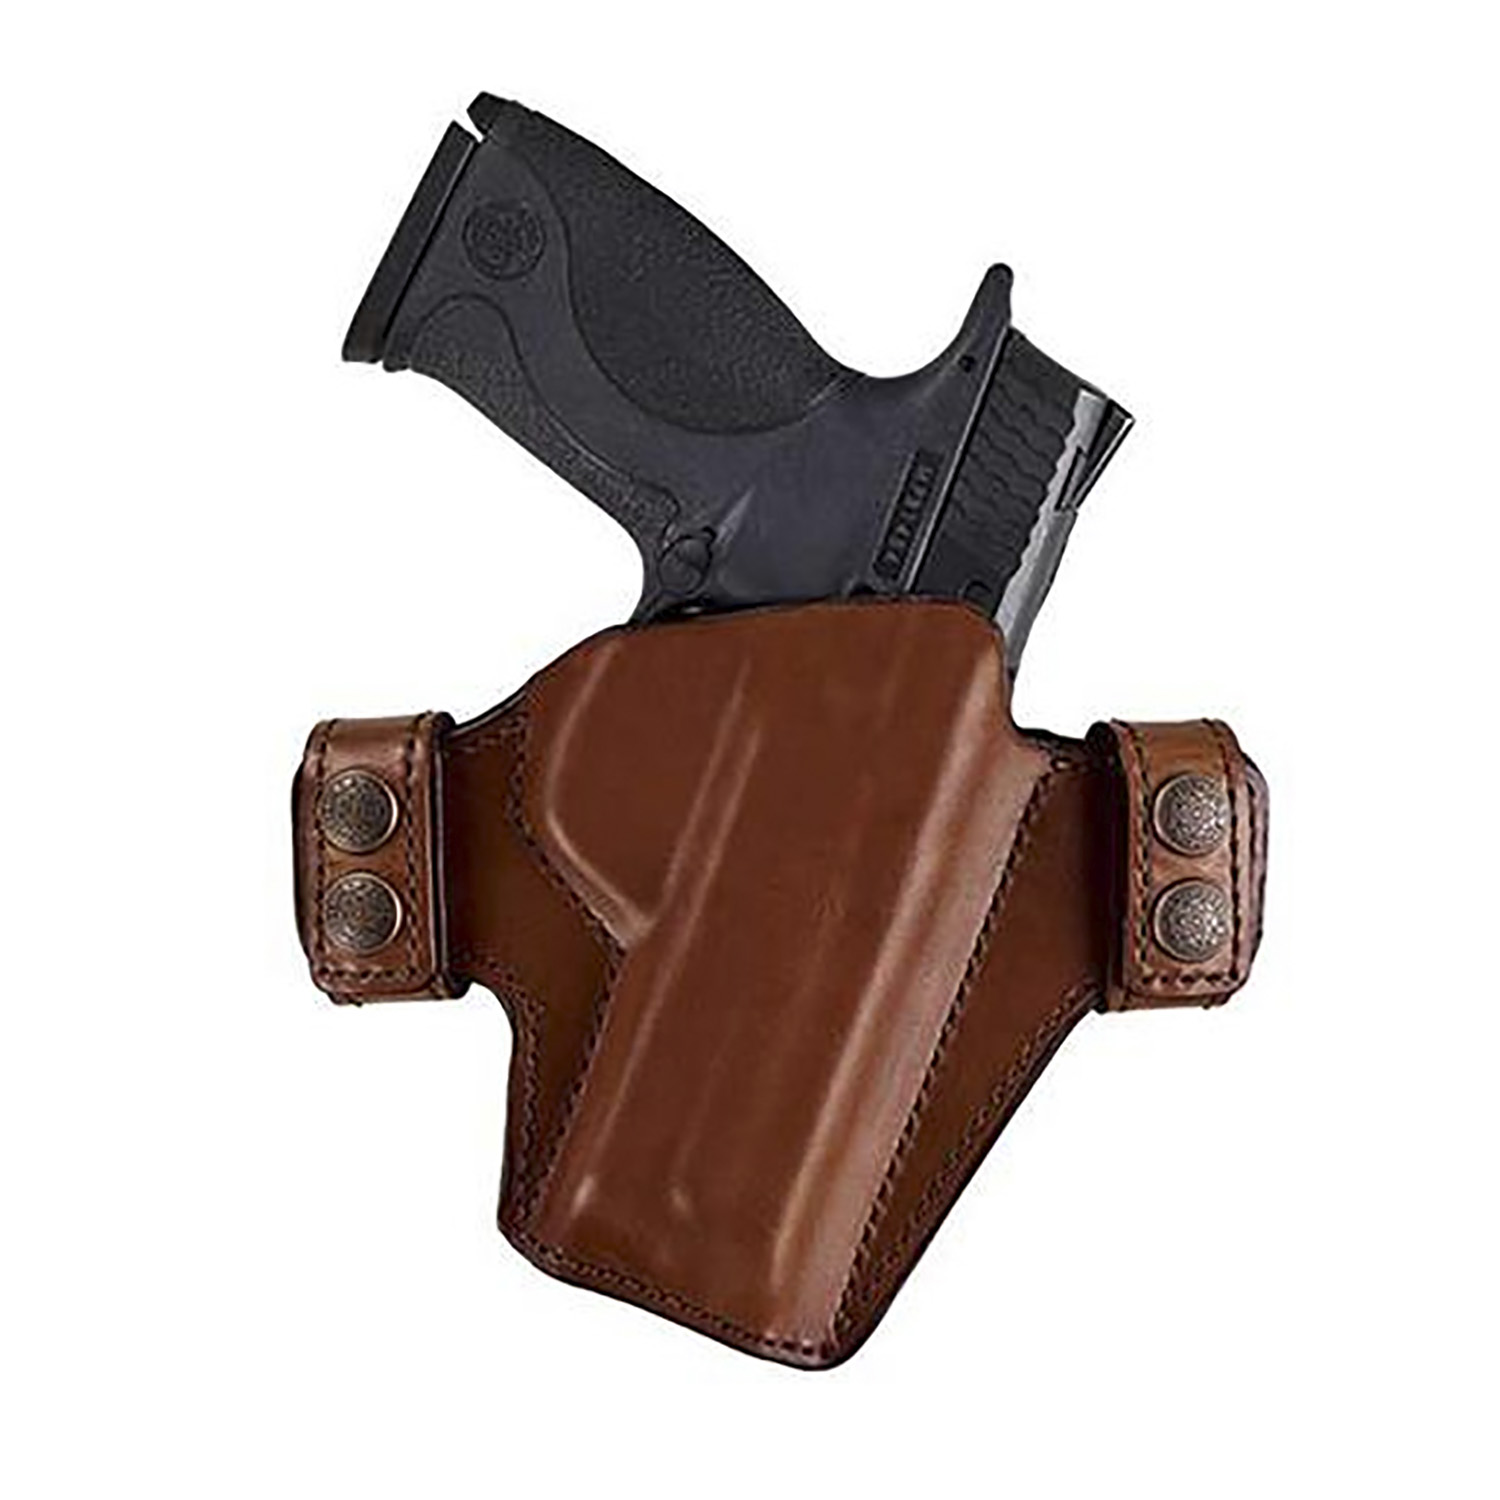 Bianchi 12 consent Belt Slide Holster